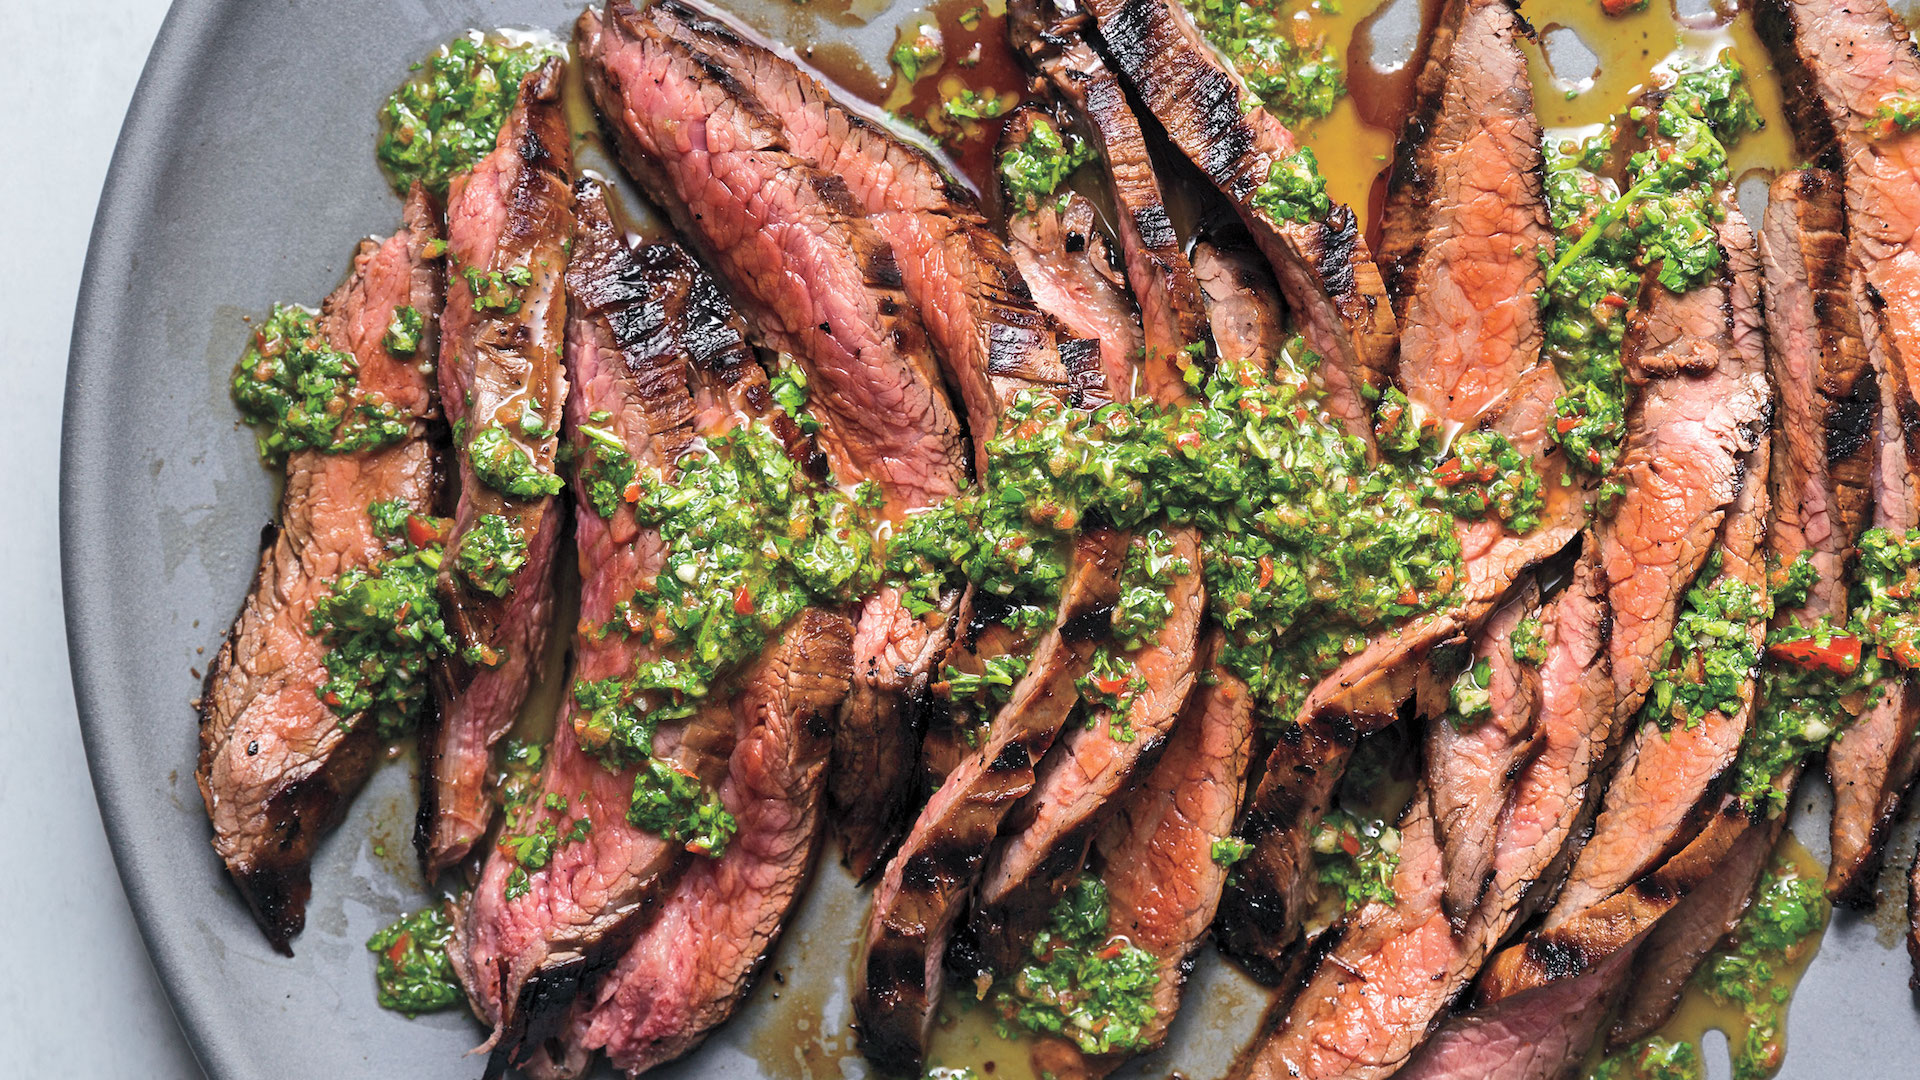 Natalie Morales makes grilling easy with chimichurri soy steak